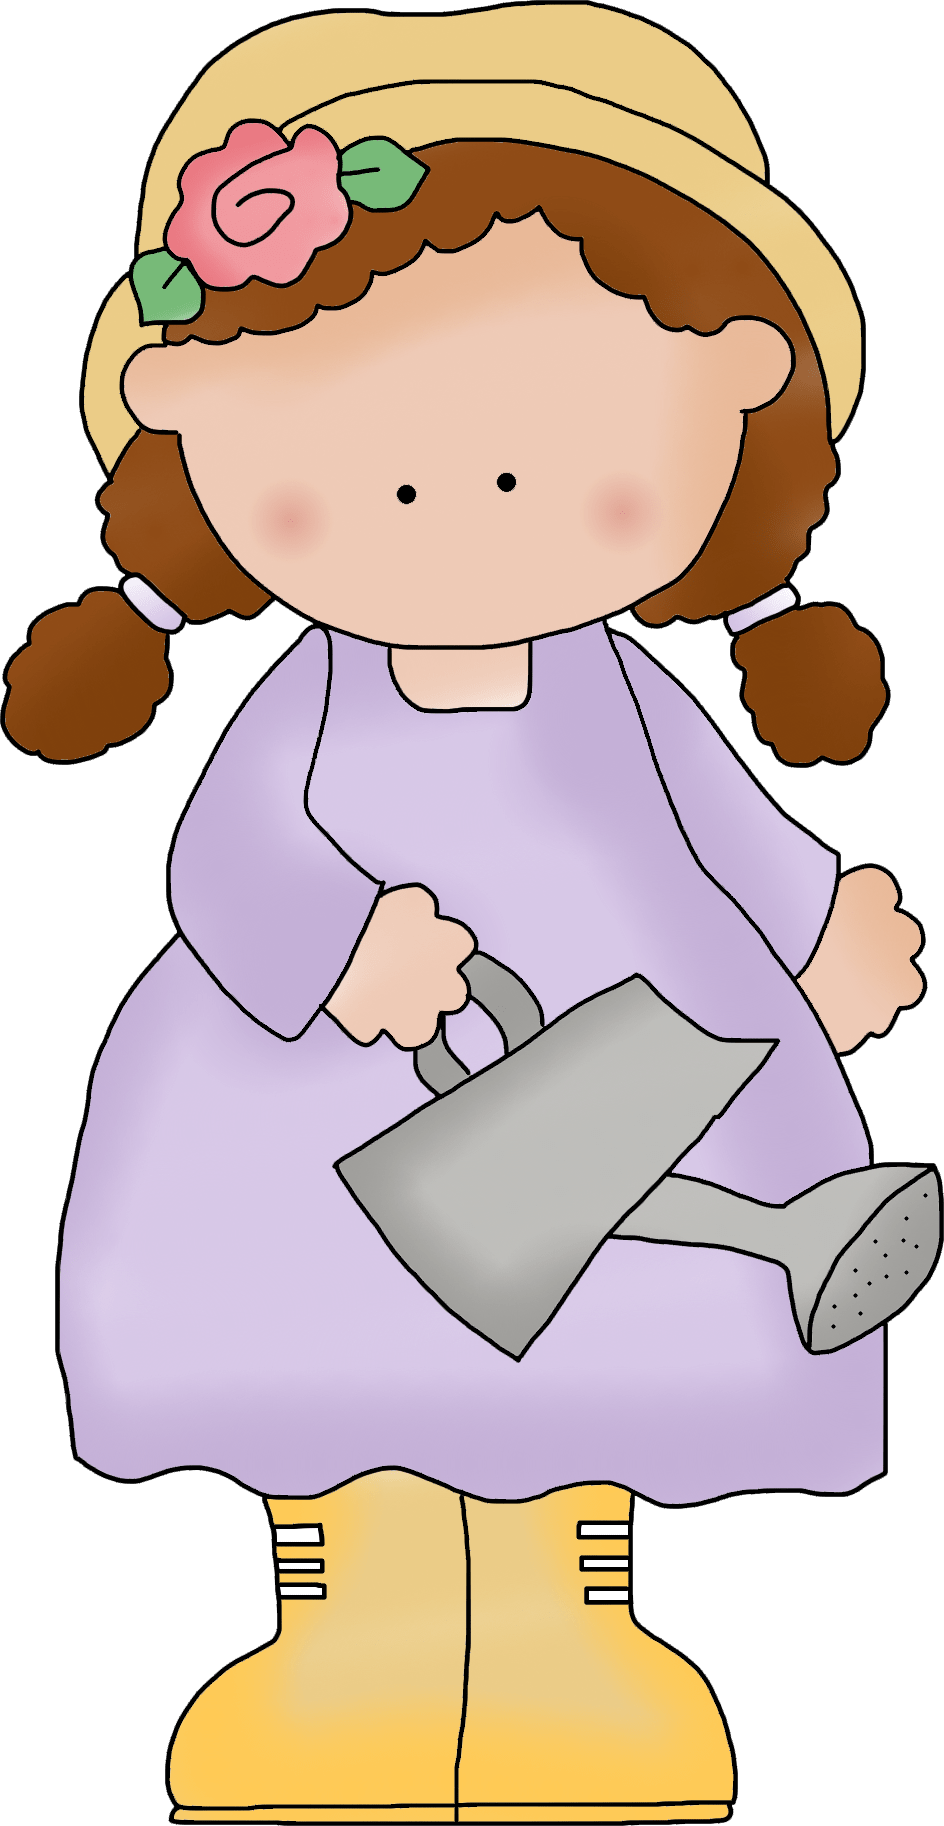 Teaching with nursery rhymes. Want clipart greedy child